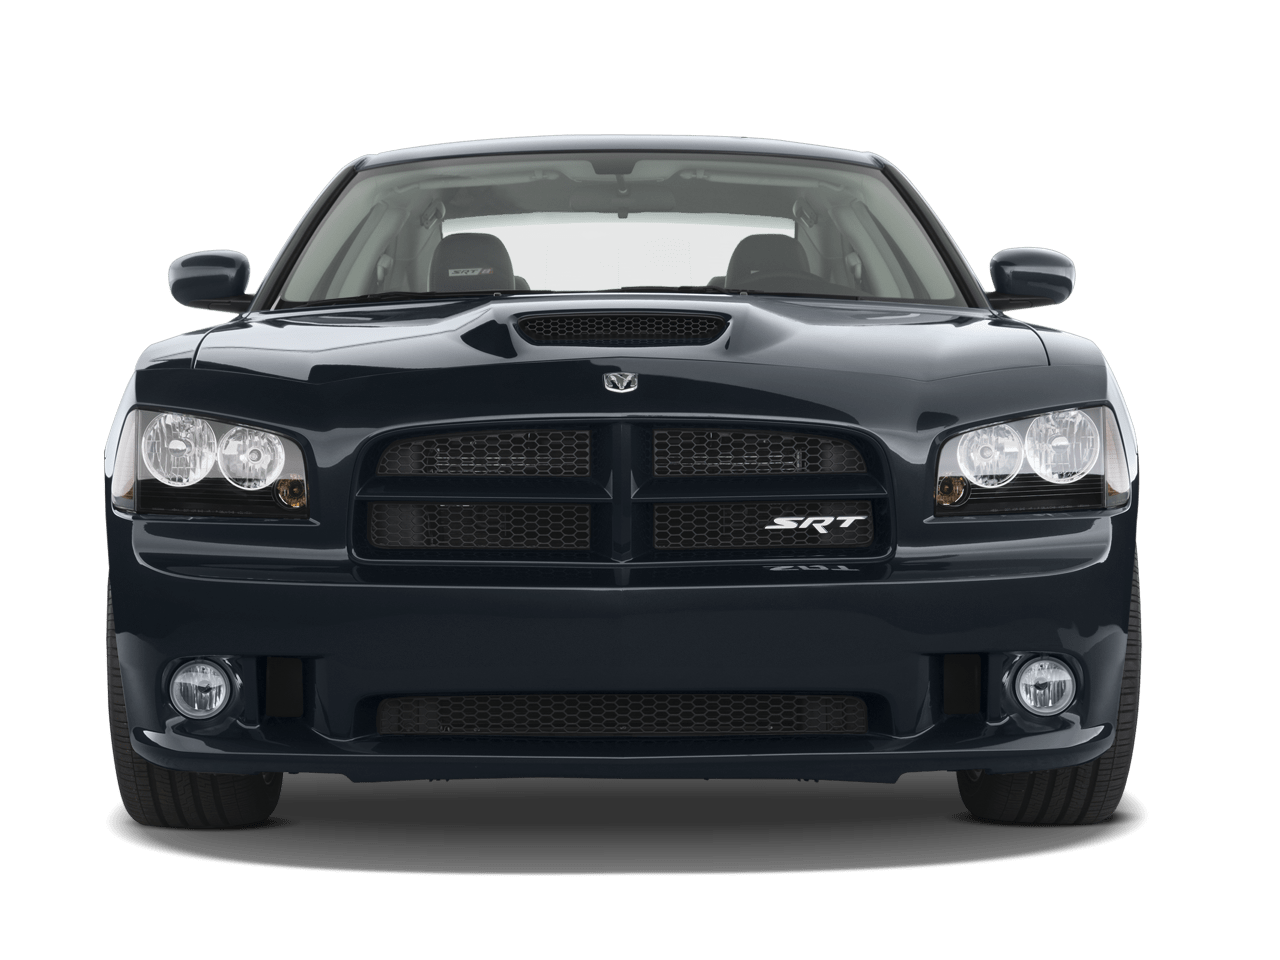 Diagram Moreover 2007 Dodge Charger On Jeep Undercarriage Diagram